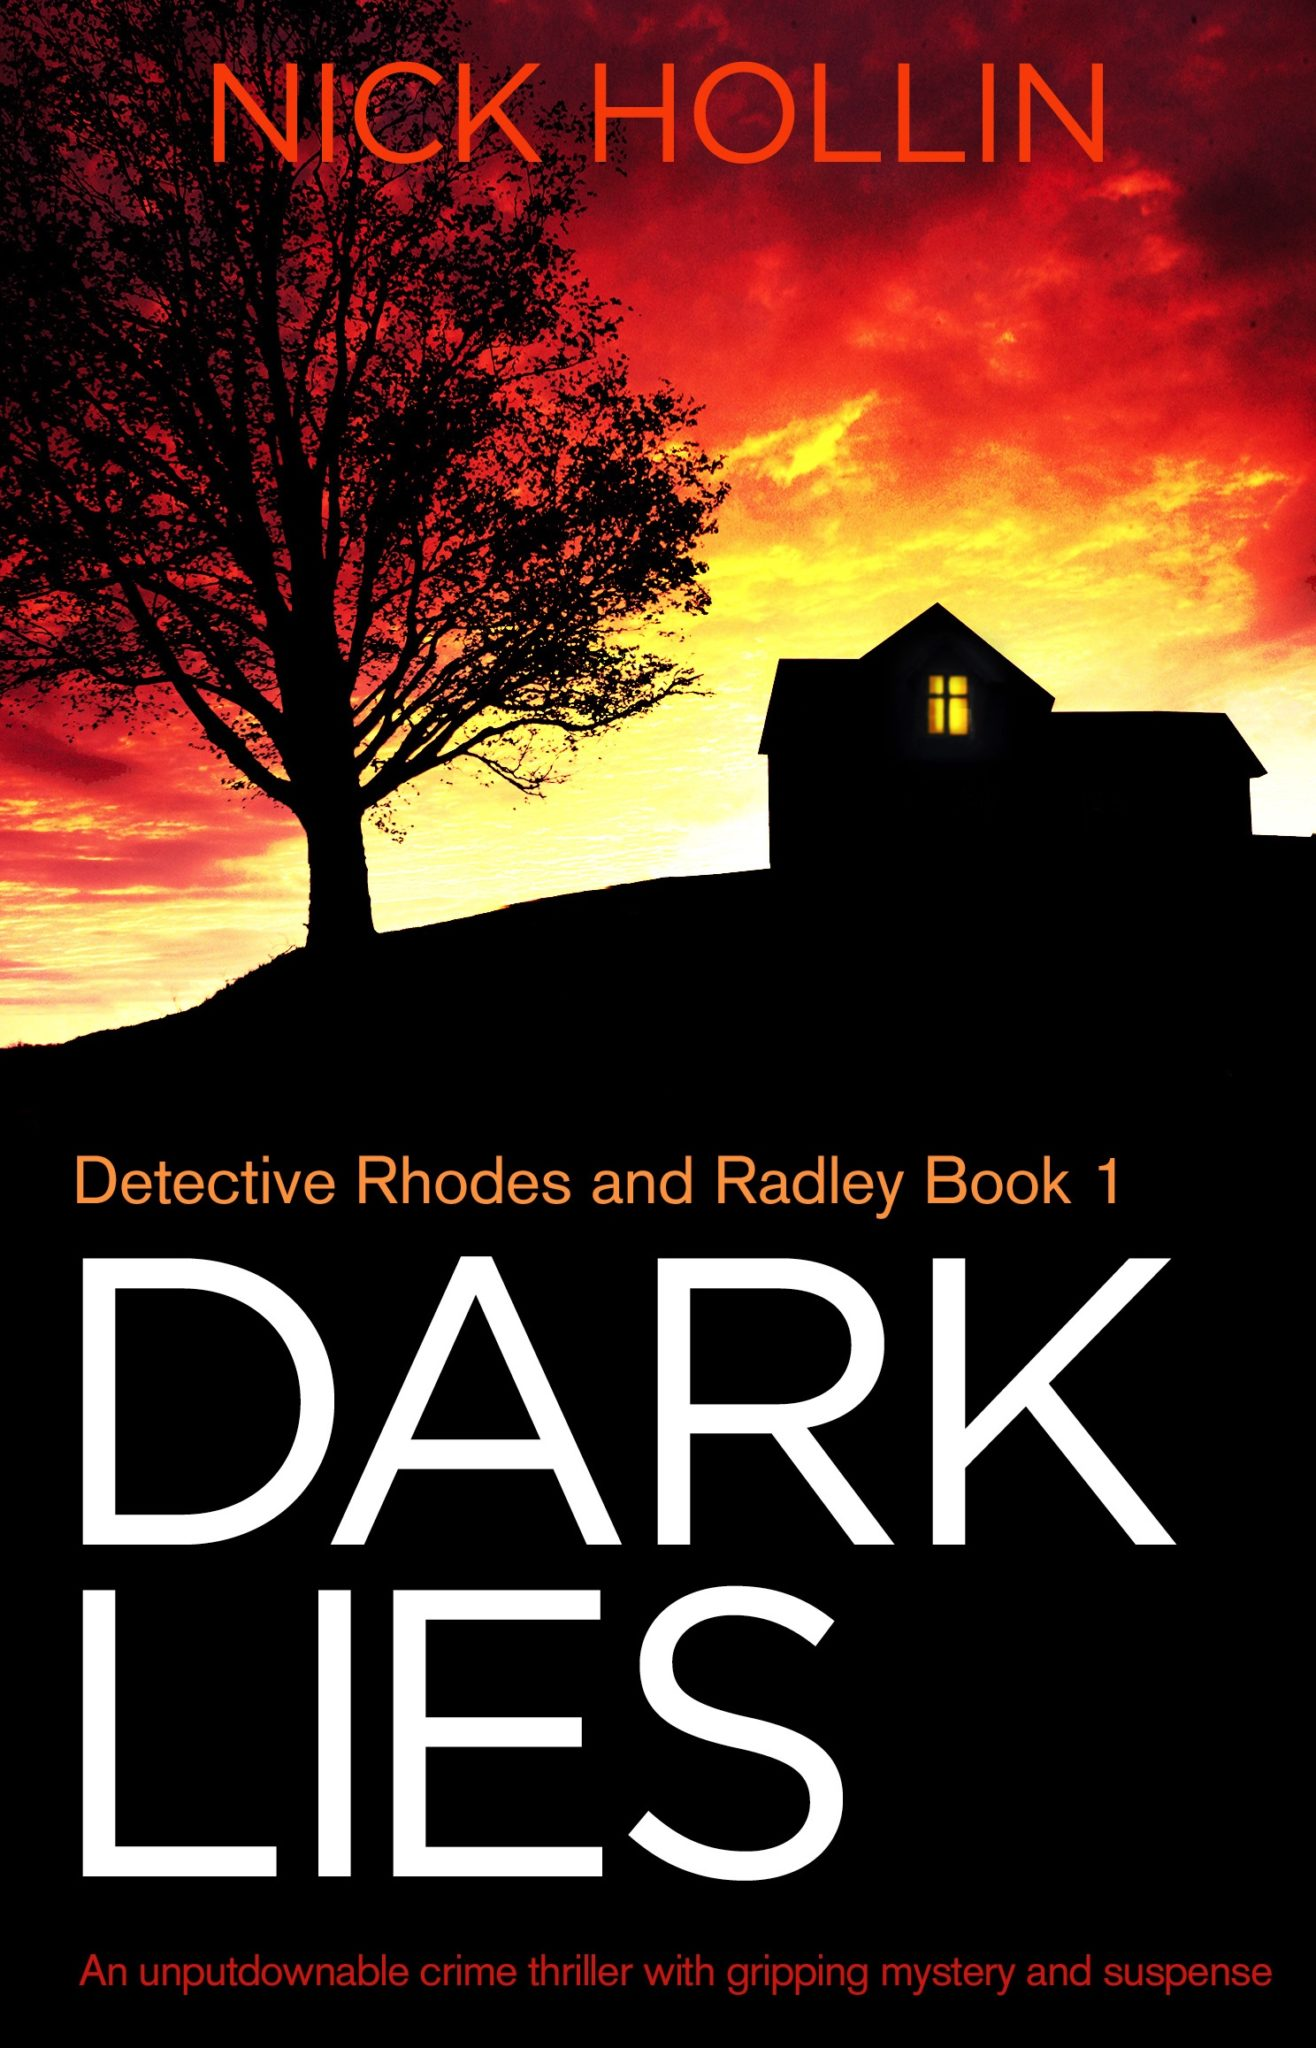 Blog Tour Review: Dark Lies